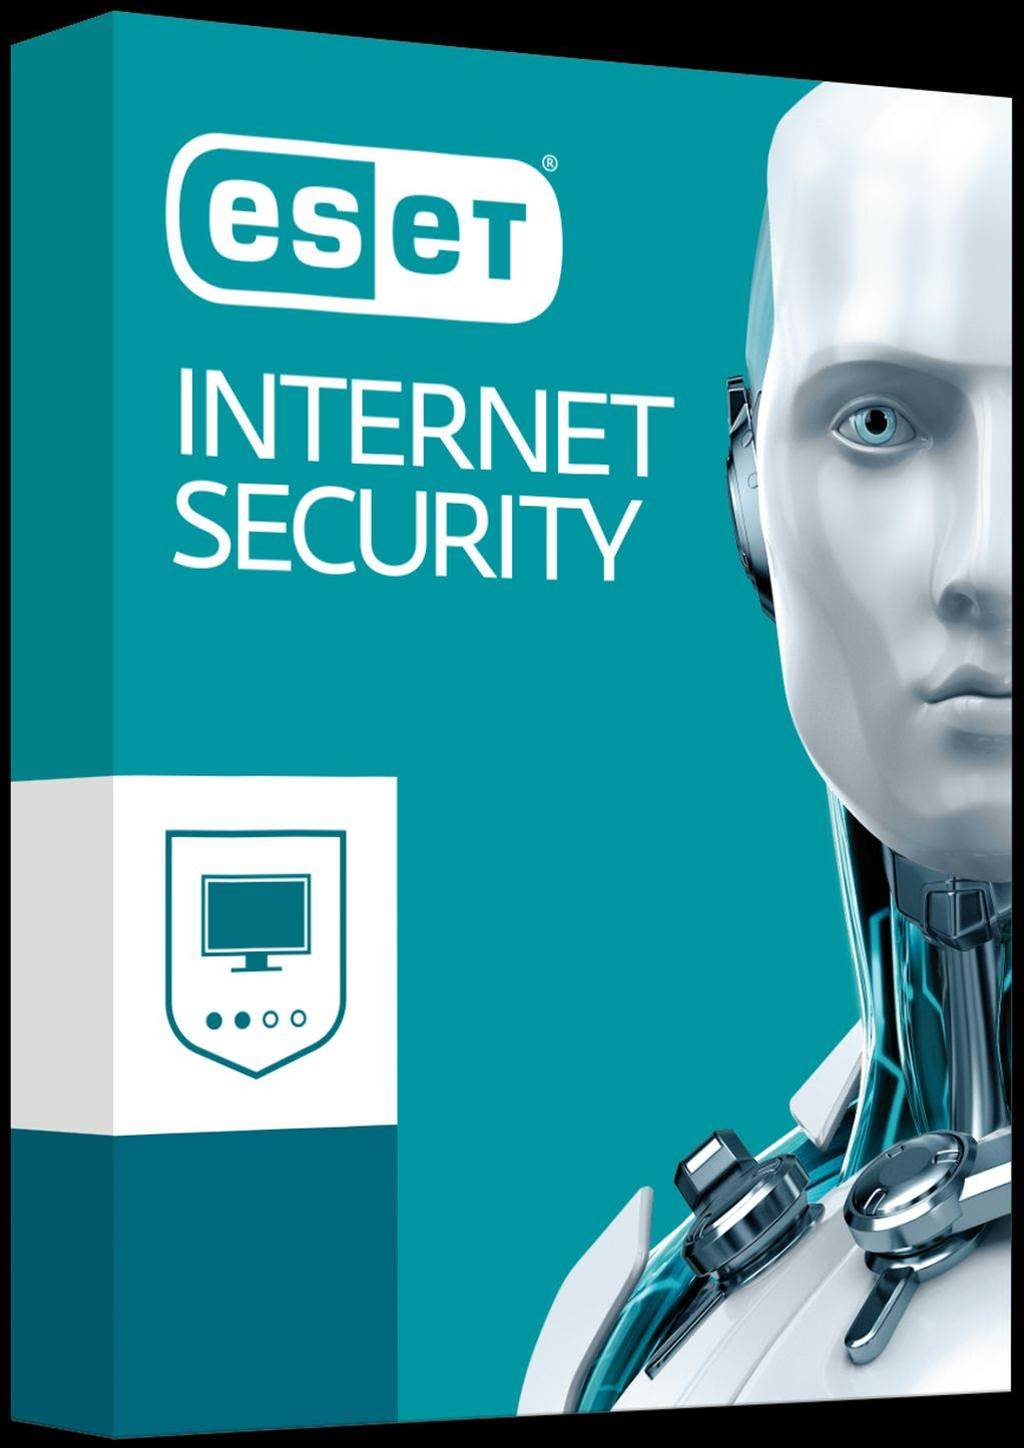 The ESET advantage